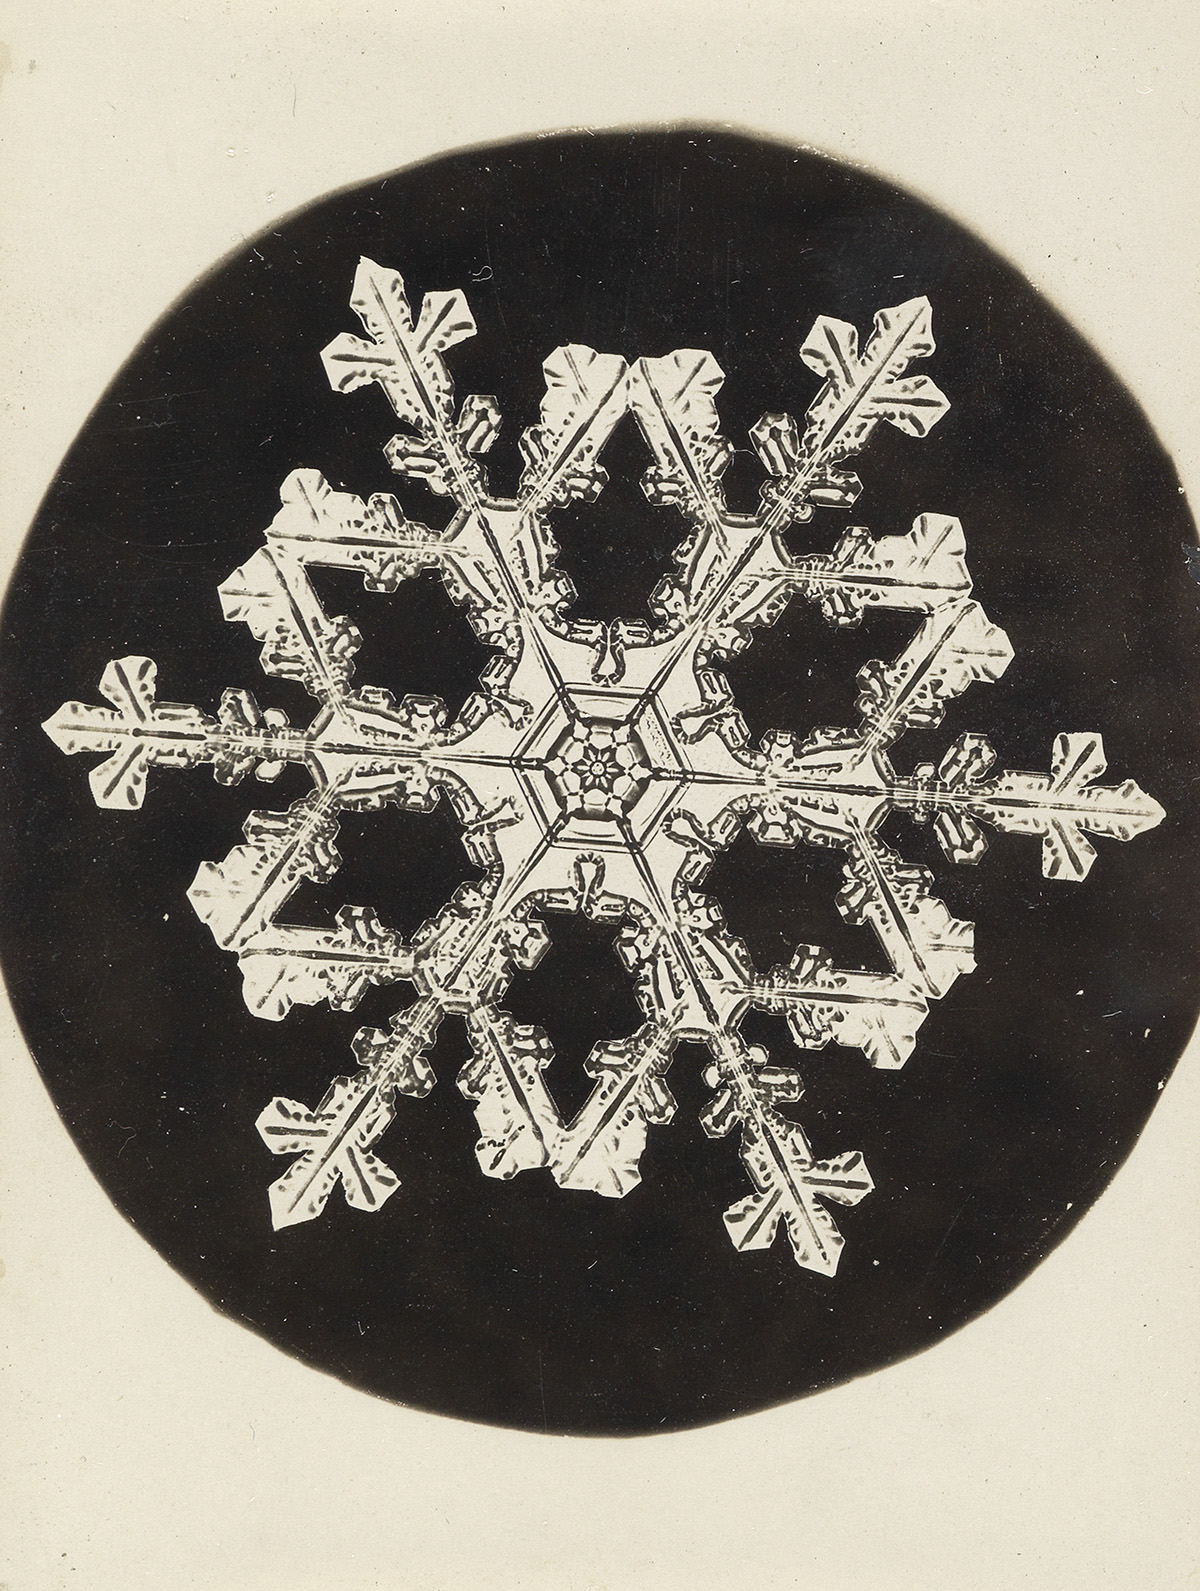 WILSON-A-SNOWFLAKE-BENTLEY-(1865-1931)-Group-of-3-microphoto